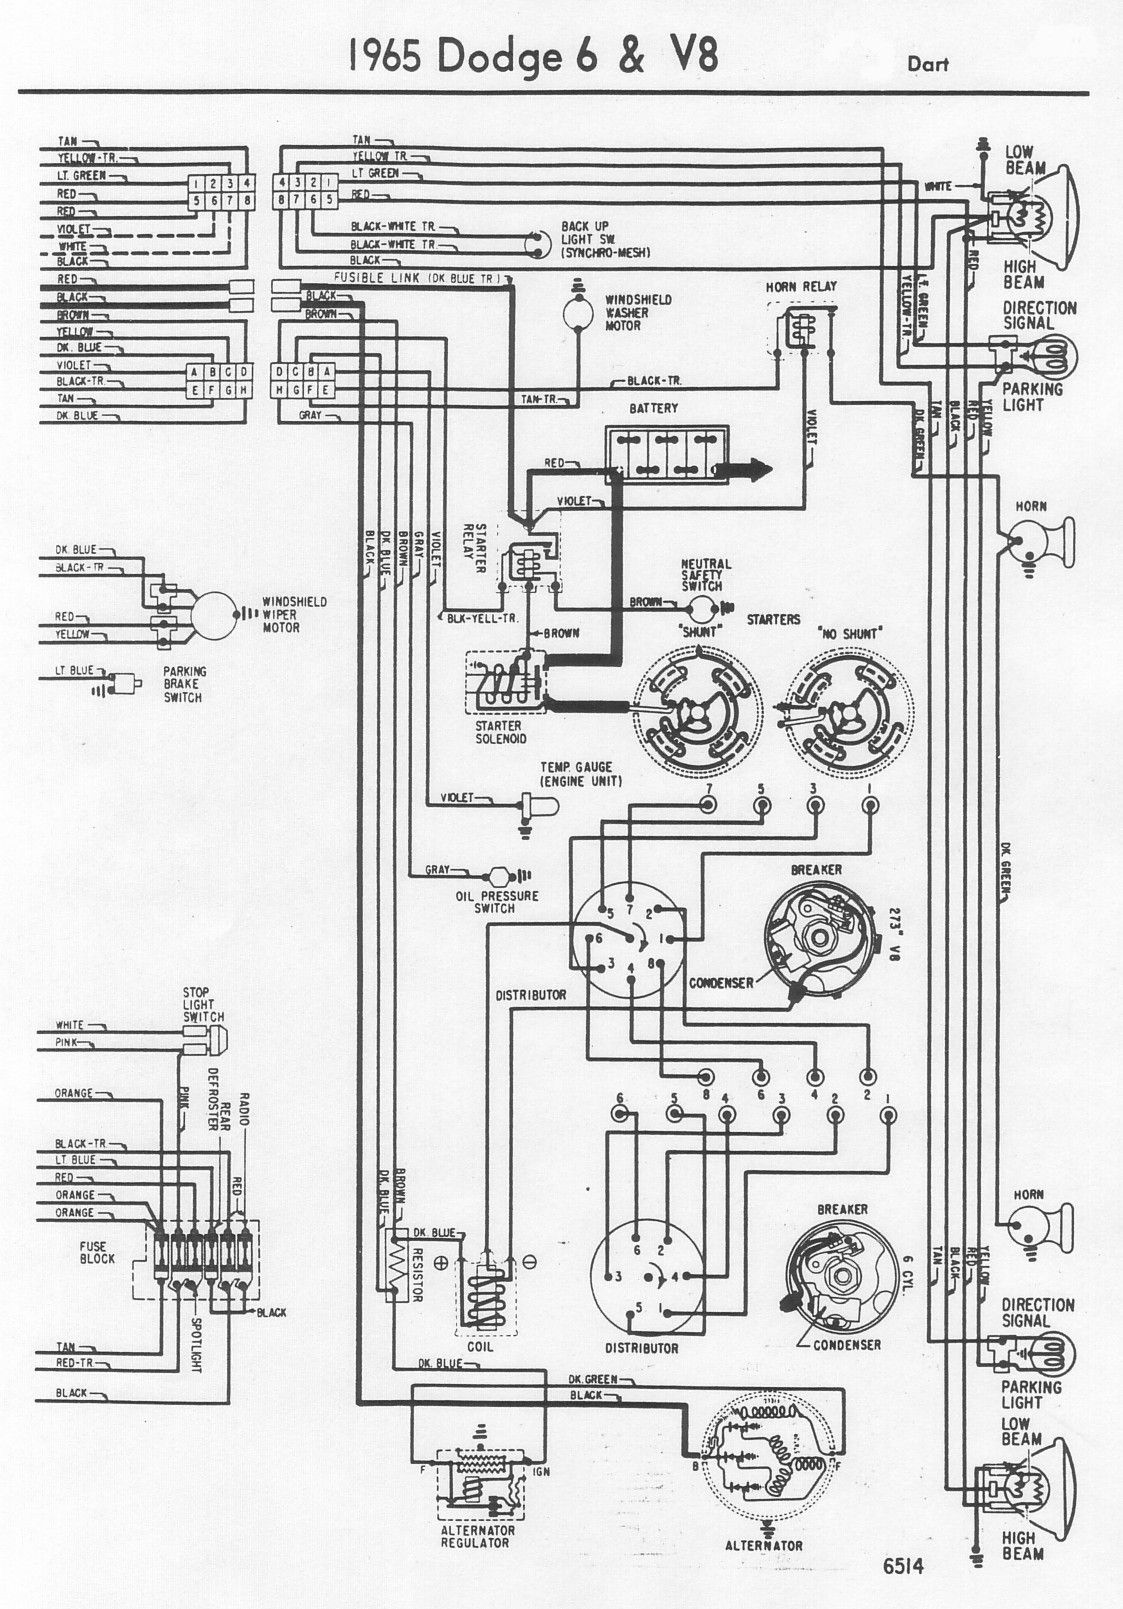 hight resolution of 1965 dodge wiring diagram wiring diagram show 1965 dodge coronet wiring diagram